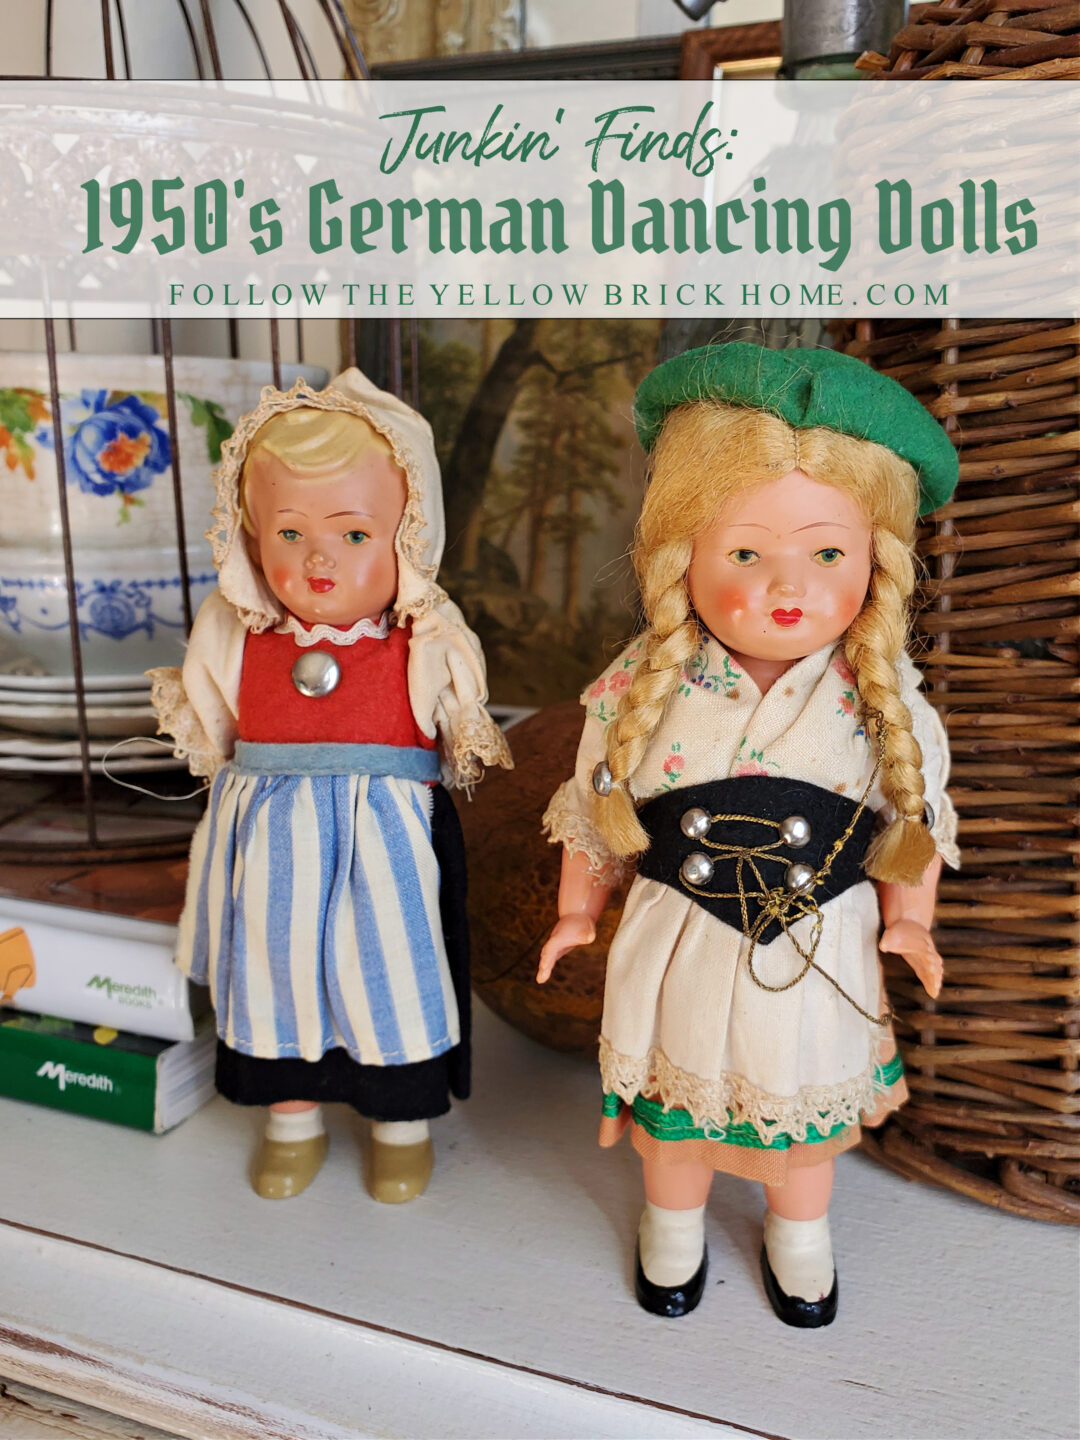 1950's German Dancing Dolls vintage wind-up dancing dolls West Germany Celluloid Dancing doll